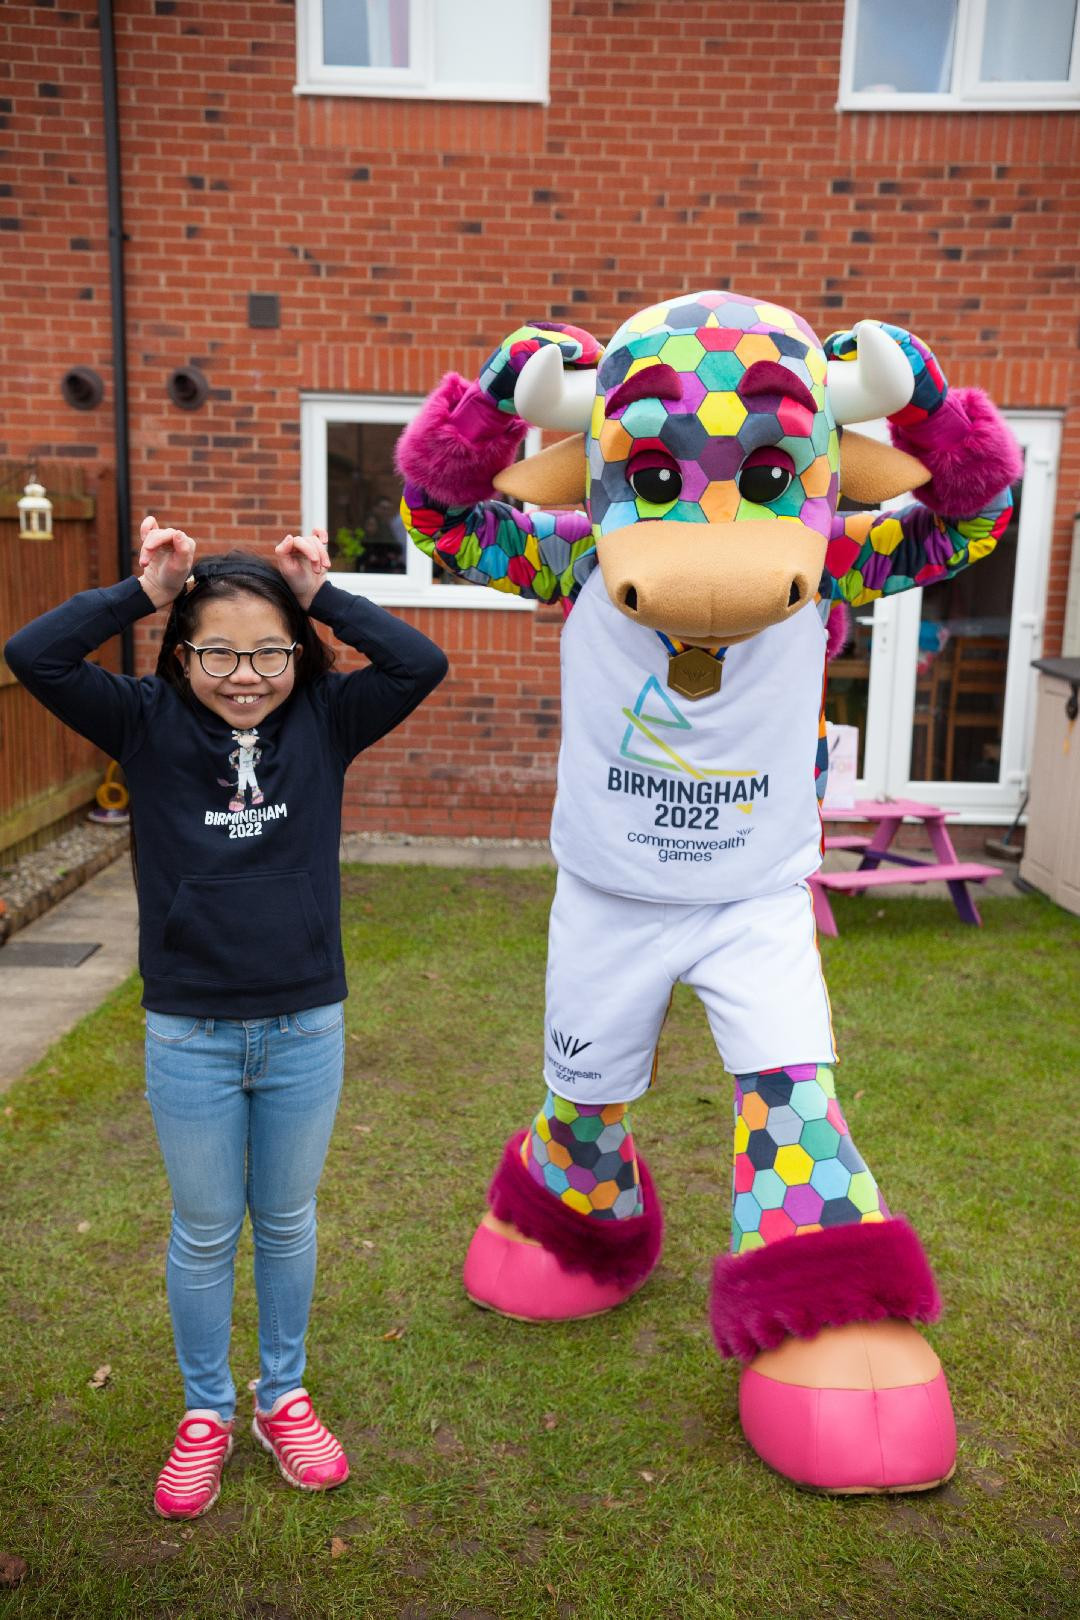 Perry was designed by Emma Lou, a 10-year-old schoolgirl in Bolton ©Birmingham 2022